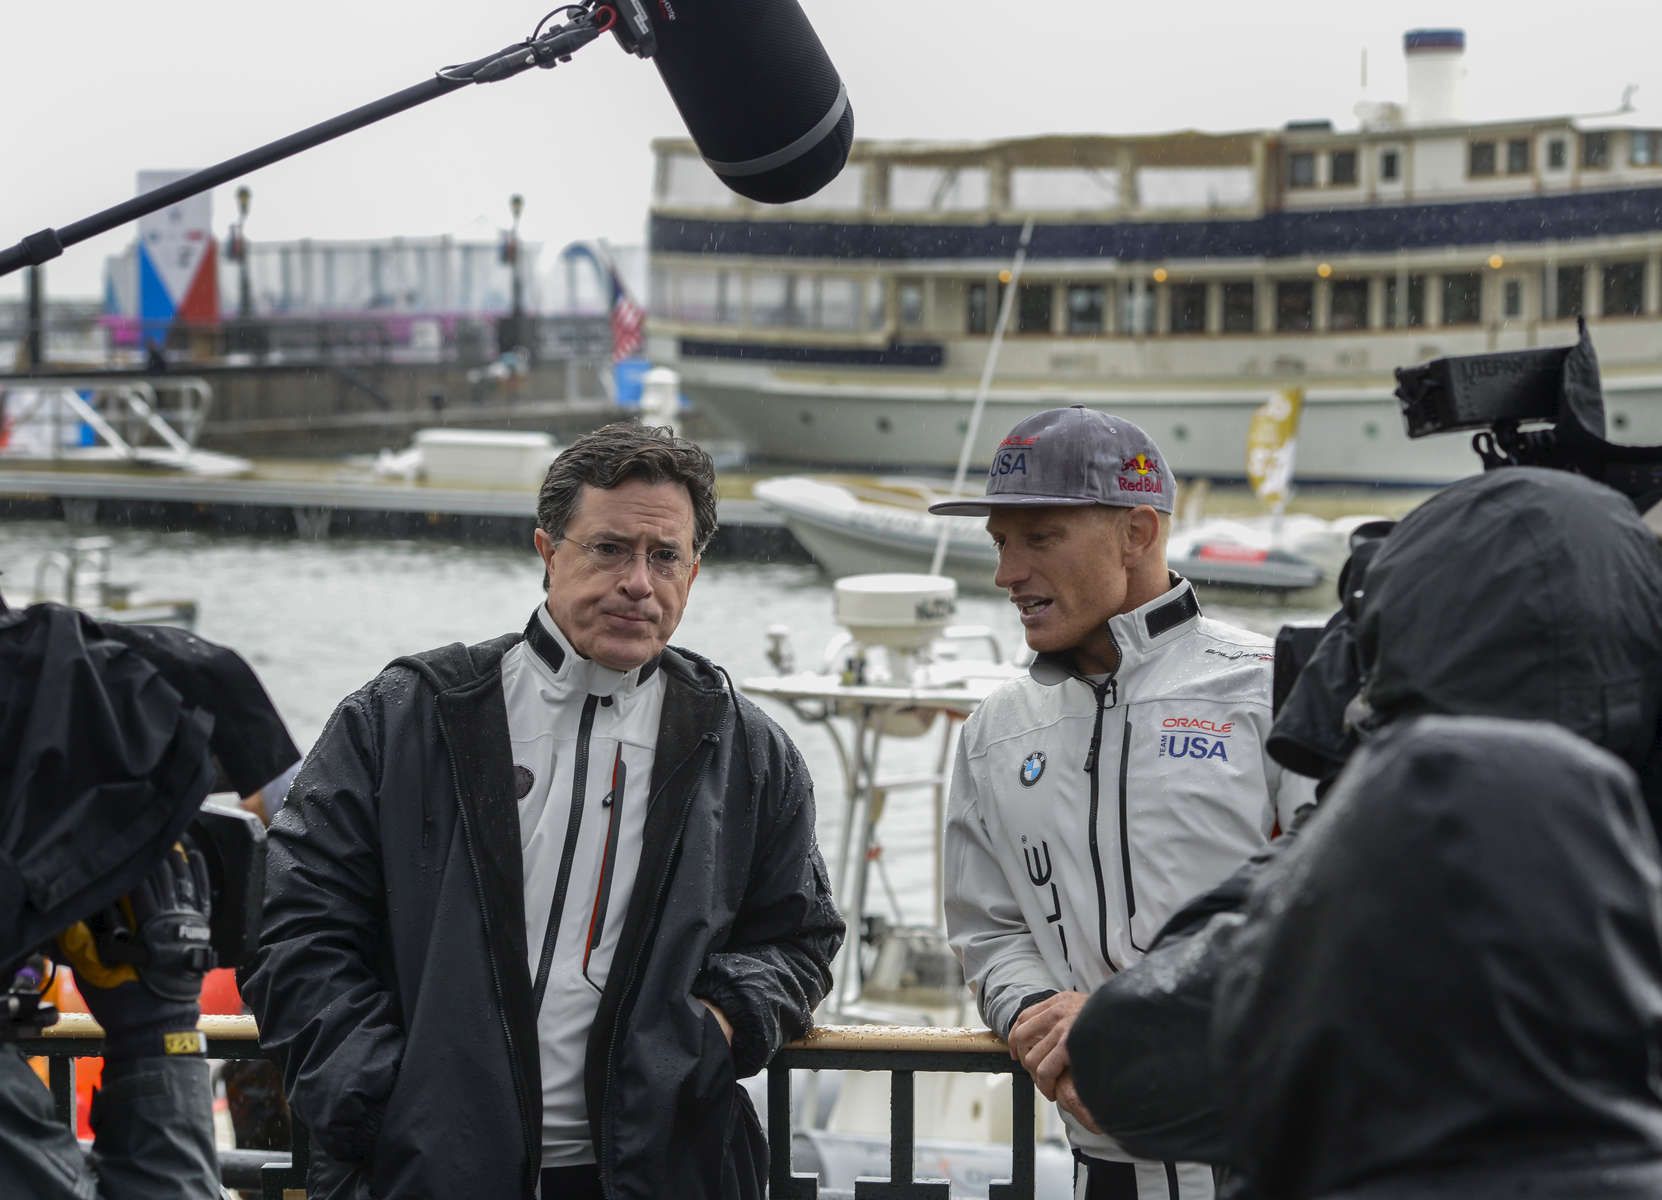 The Late Show host Stephen Colbert (left) interviews James Spithill (right), two time America's Cup Winning skipper for Oracle Team USA on the opening day of America's Cup sailing competition at the Waterfront Plaza Brookfield Place located at 230 Vesey Street in Manhattan, May 6, 2016.